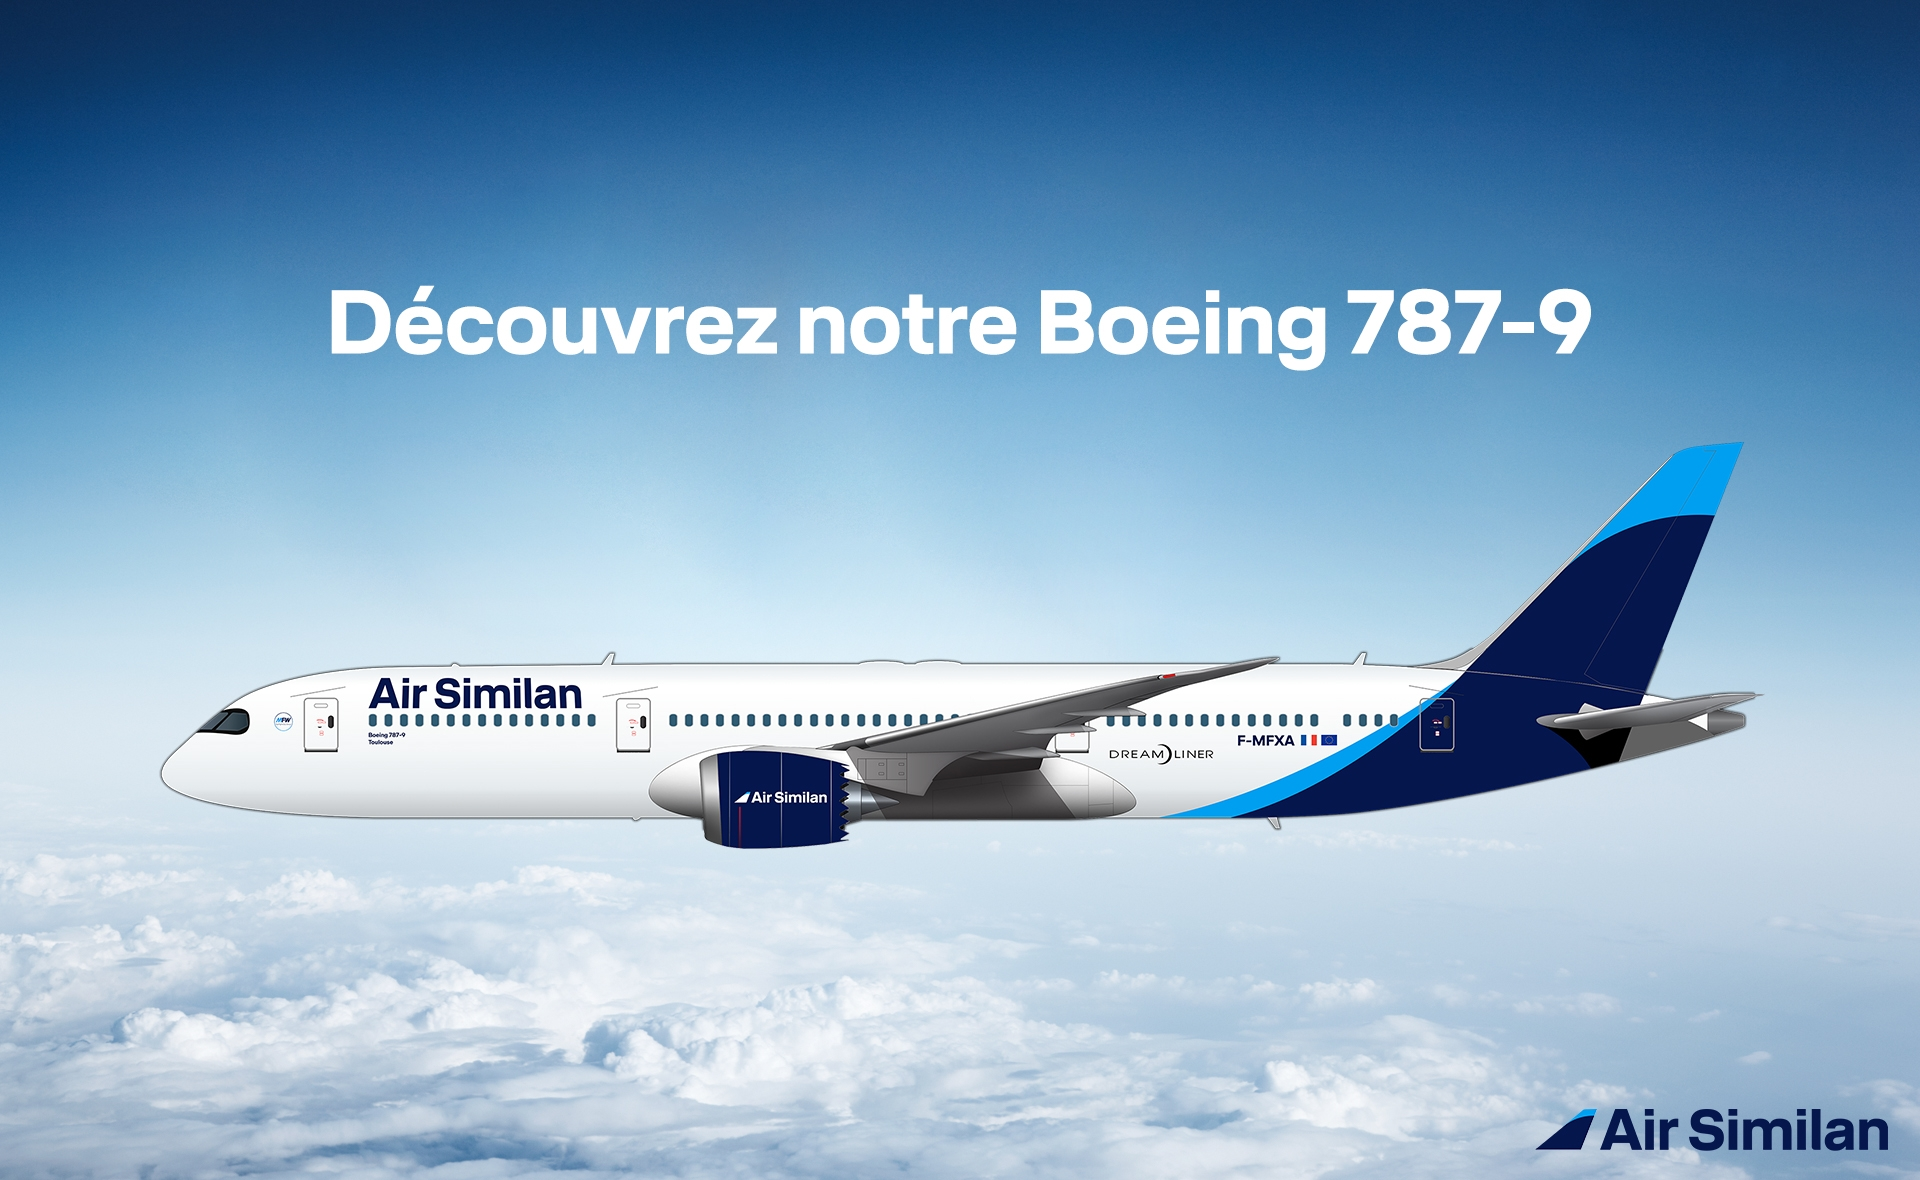 Air Similan commande 4 Boeing 787-9 Dreamliner